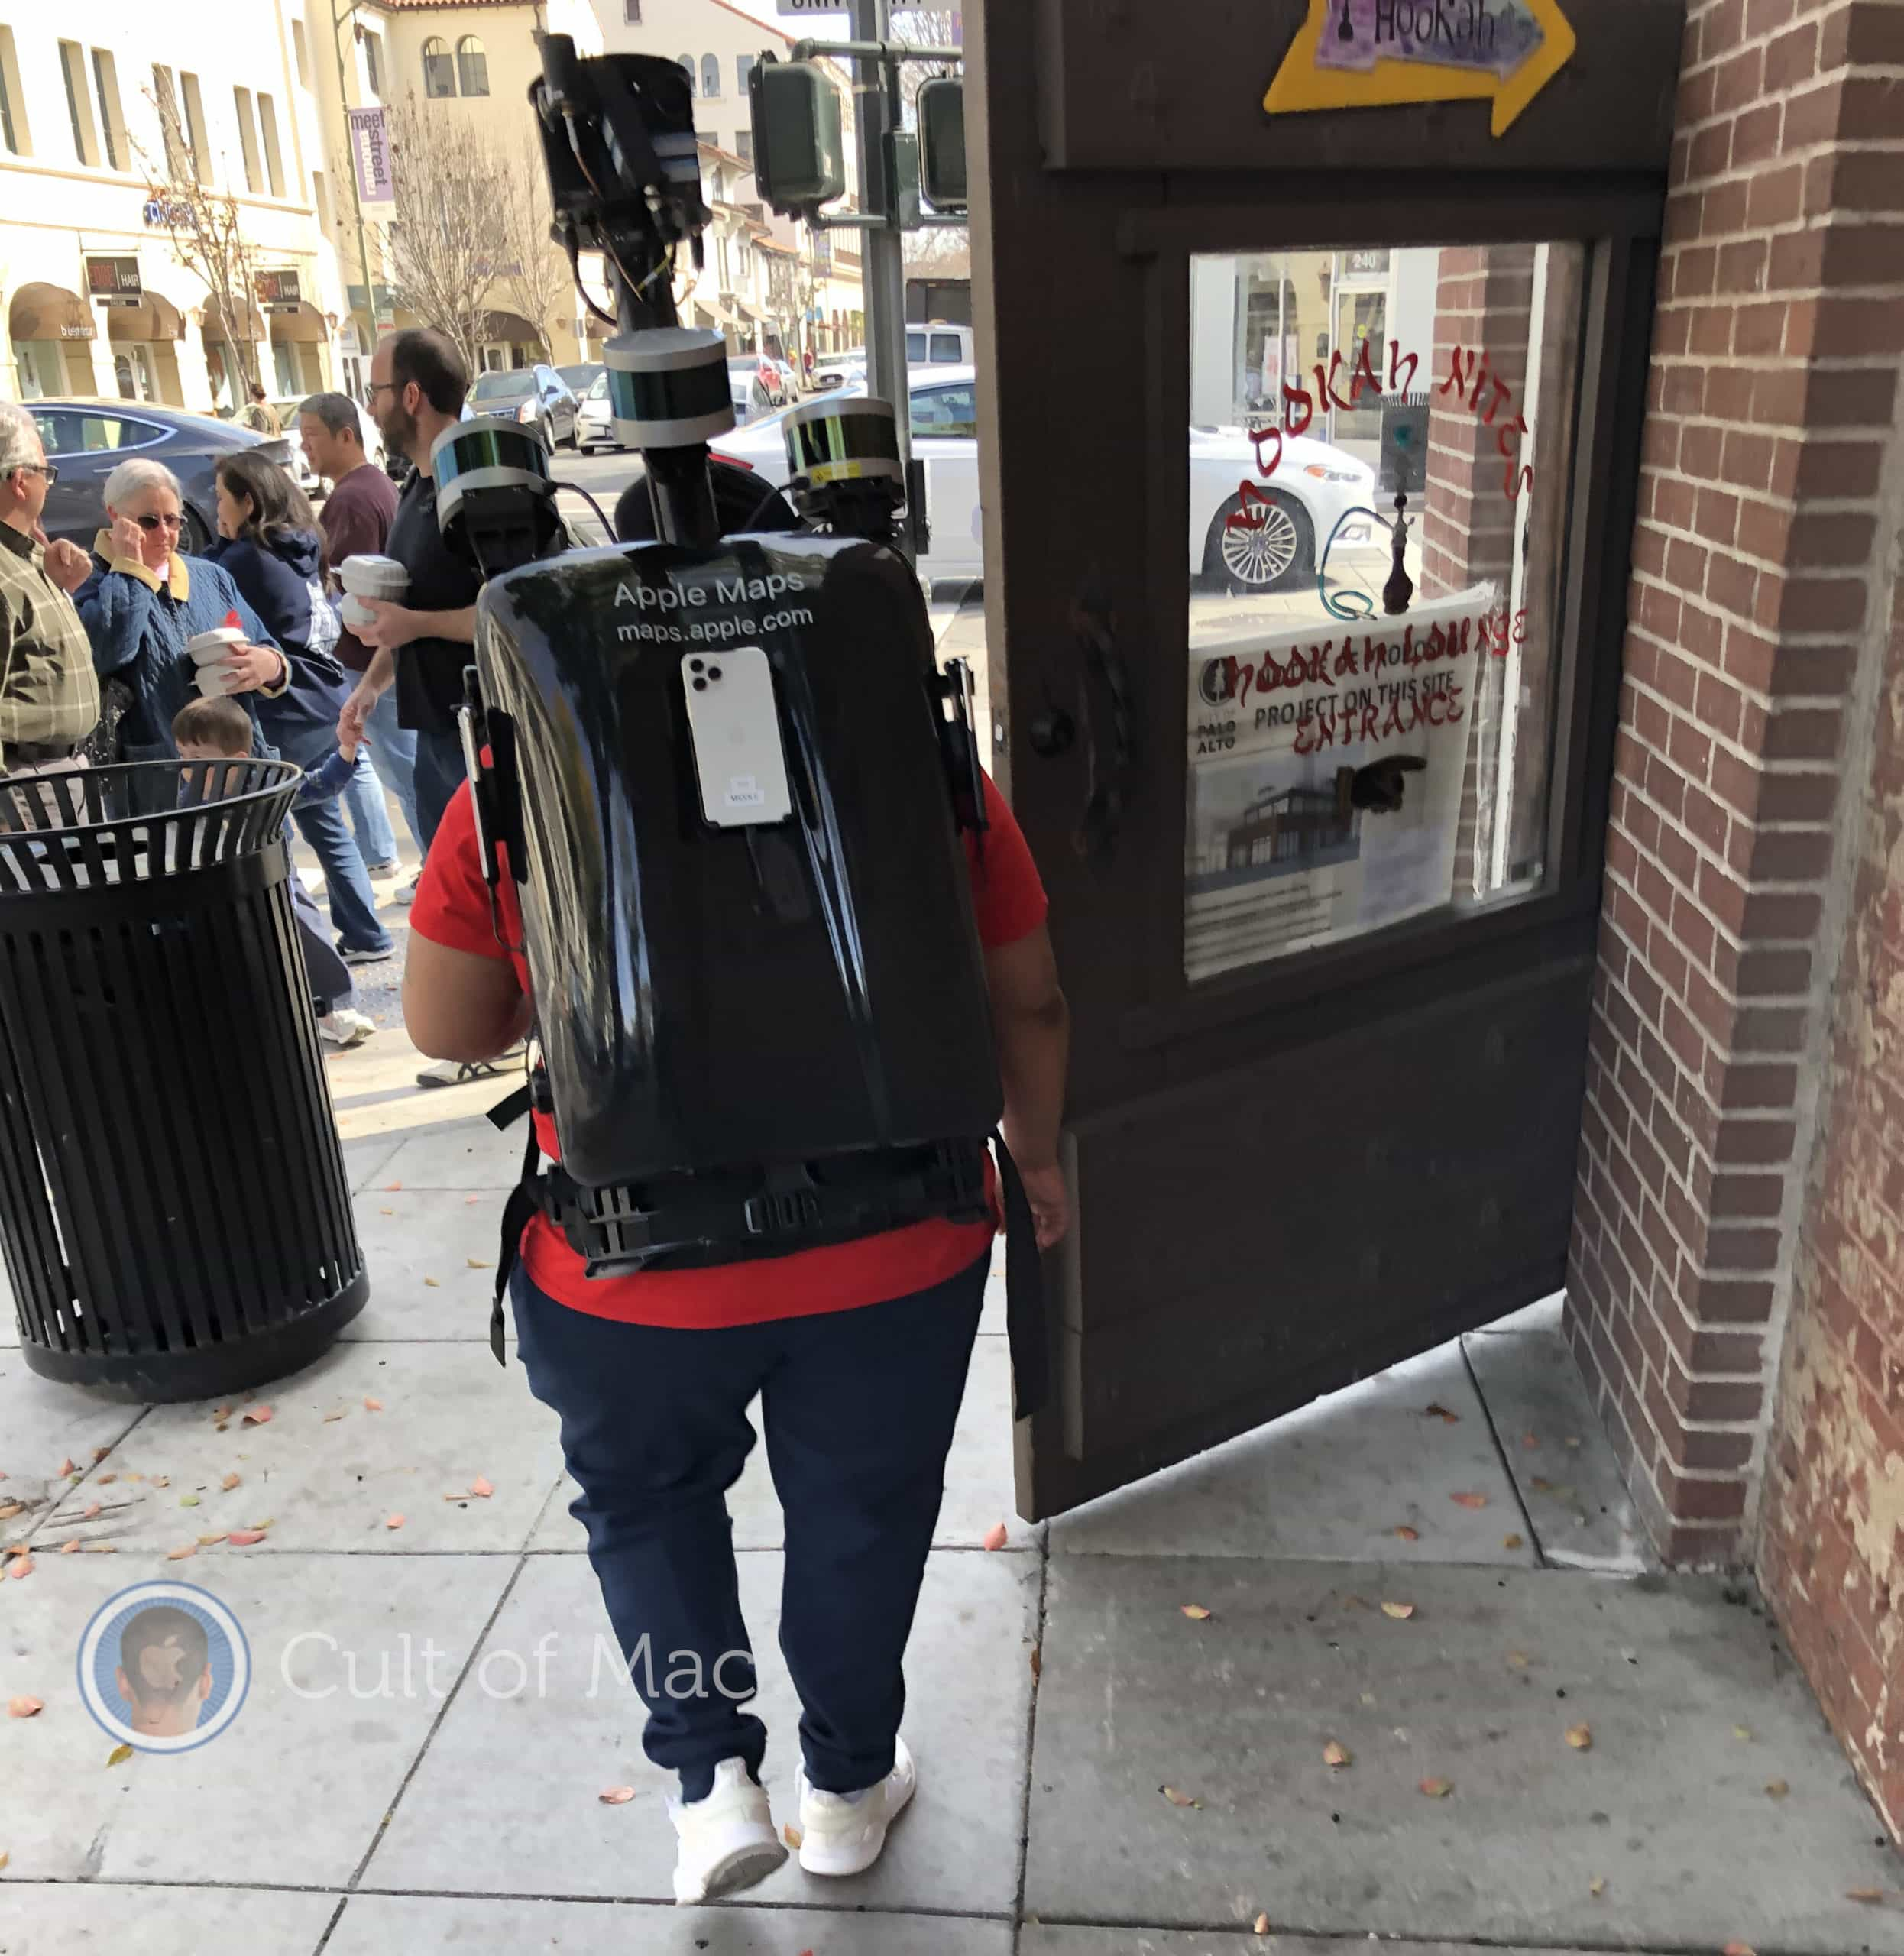 Have you seen one of these guys walking around your city with an upgraded Apple Maps backpack with iPhone 11 Pros?